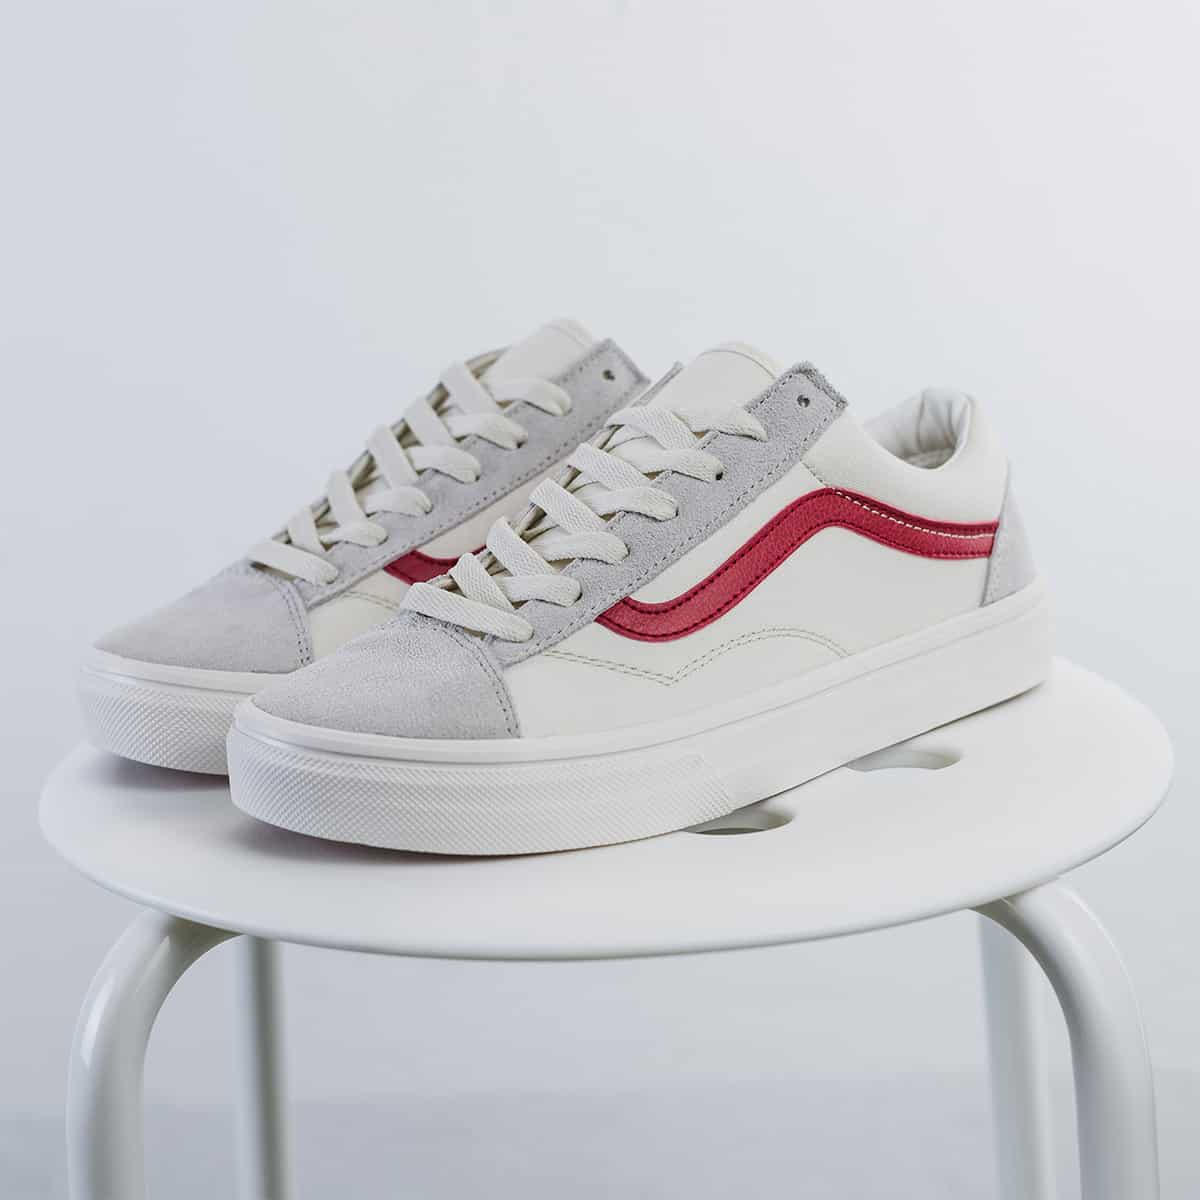 Giày Vans Style 36 Marshmallow Racing Red 1